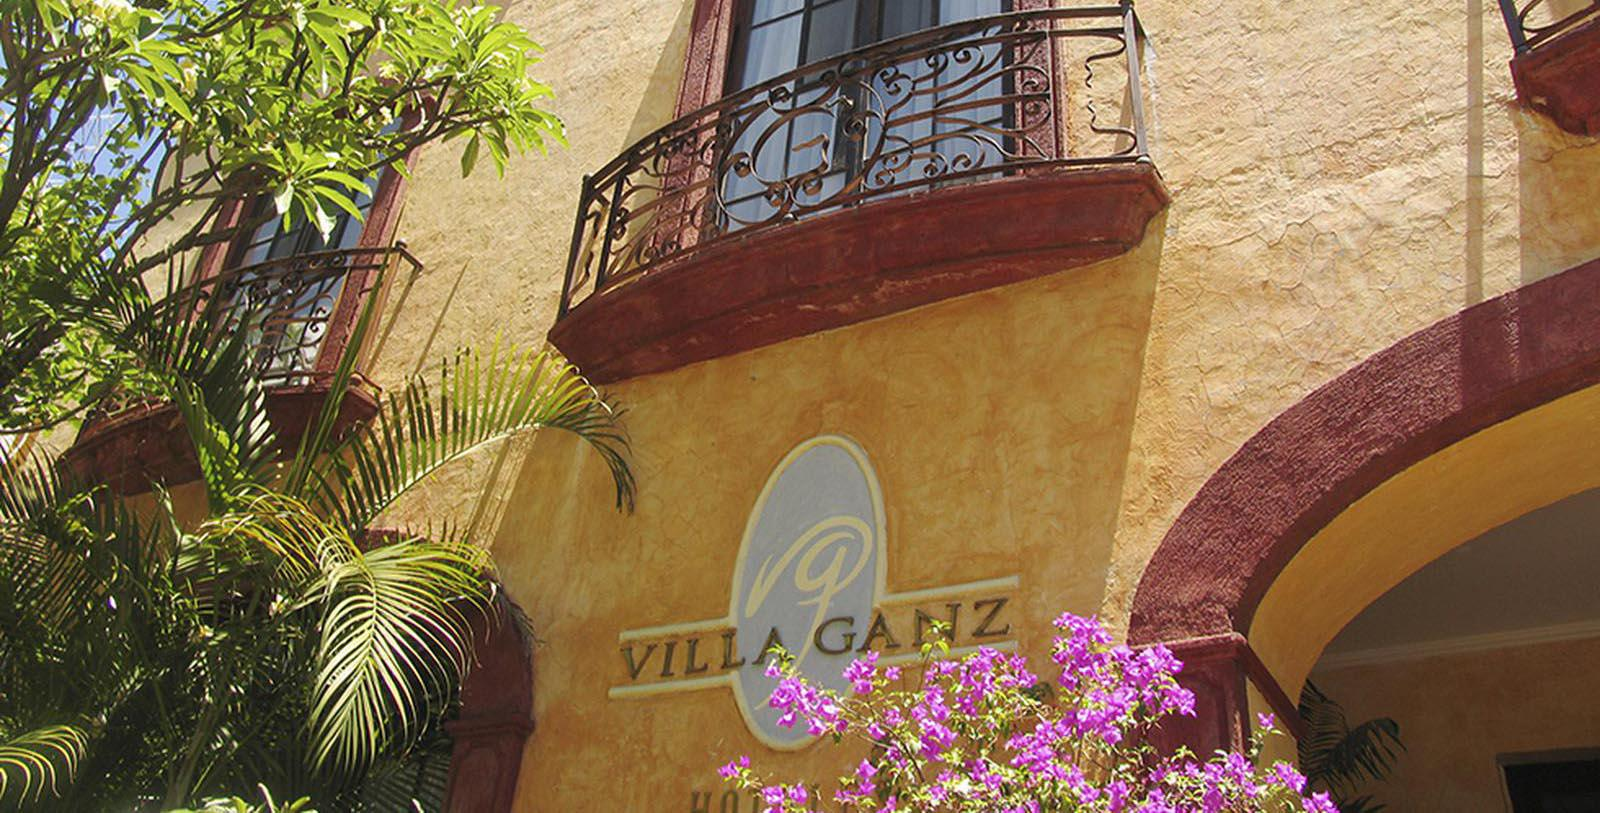 Image of Hotel Sign at Villa Ganz Boutique Hotel, 1930, Member of Historic Hotels Worldwide, in Guadalajara, Jalisco, Mexico, Overview